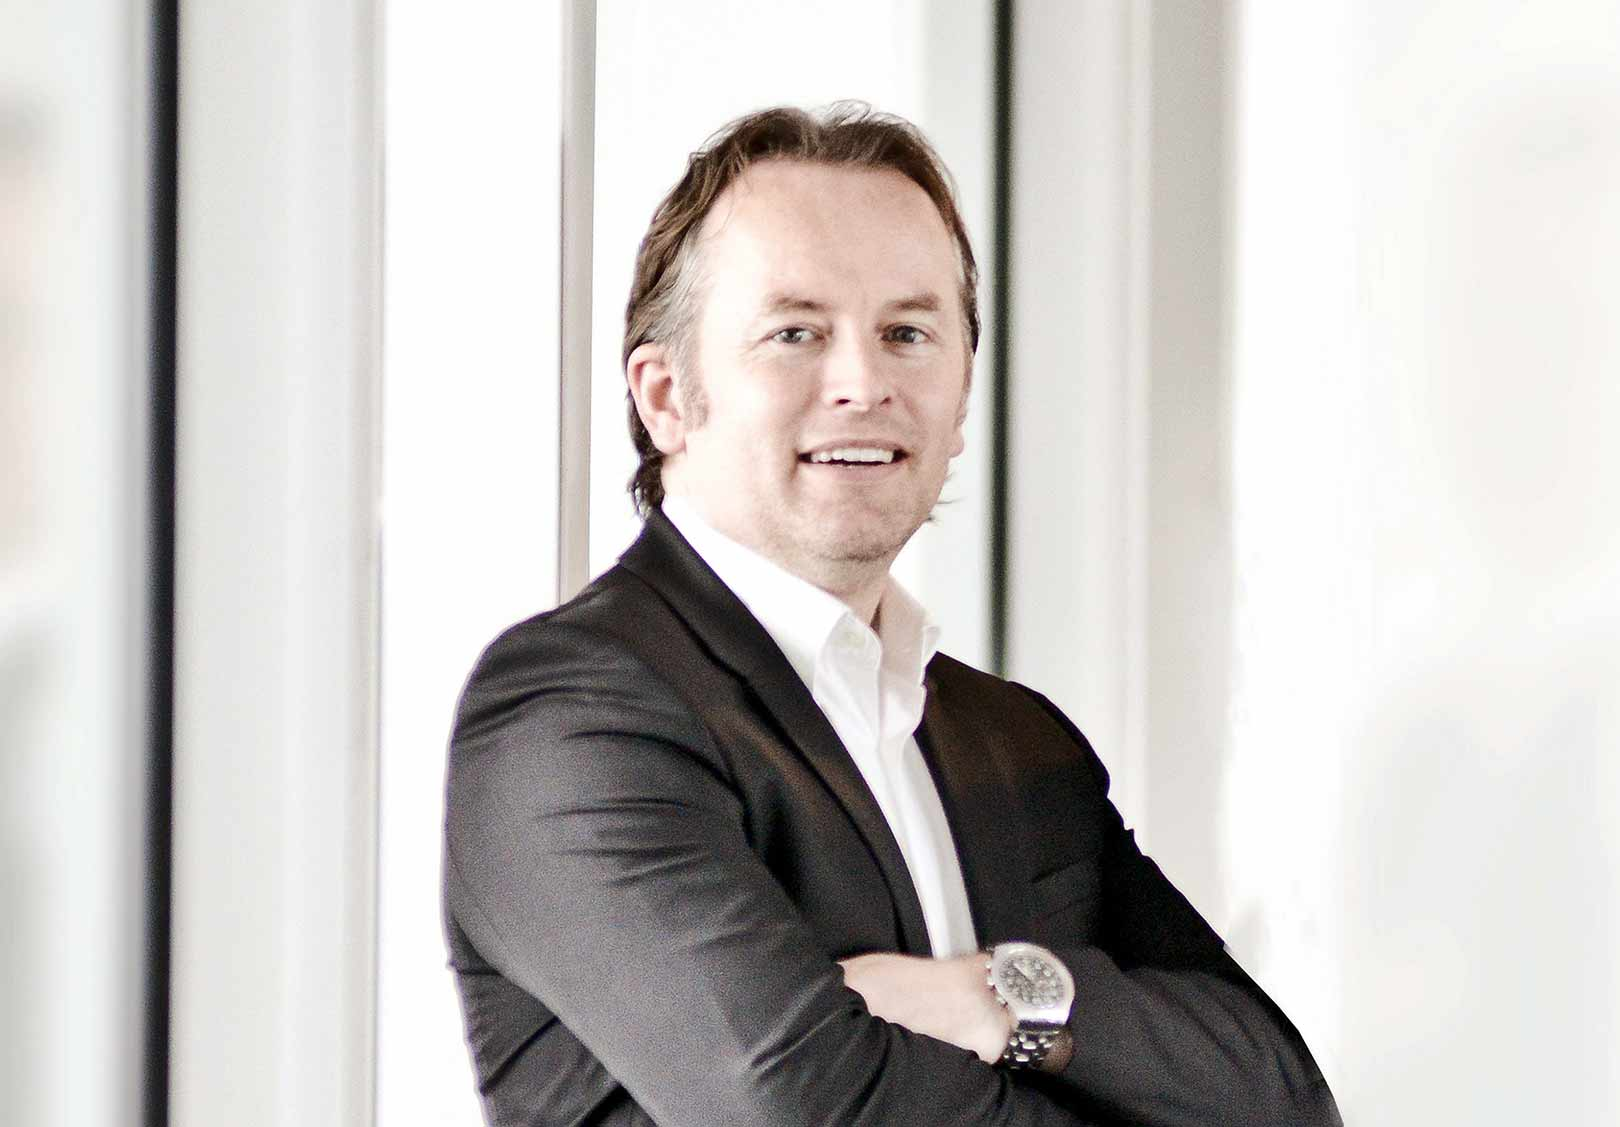 Architekt Ulf Bambach, ATP-Partner in Frankfurt